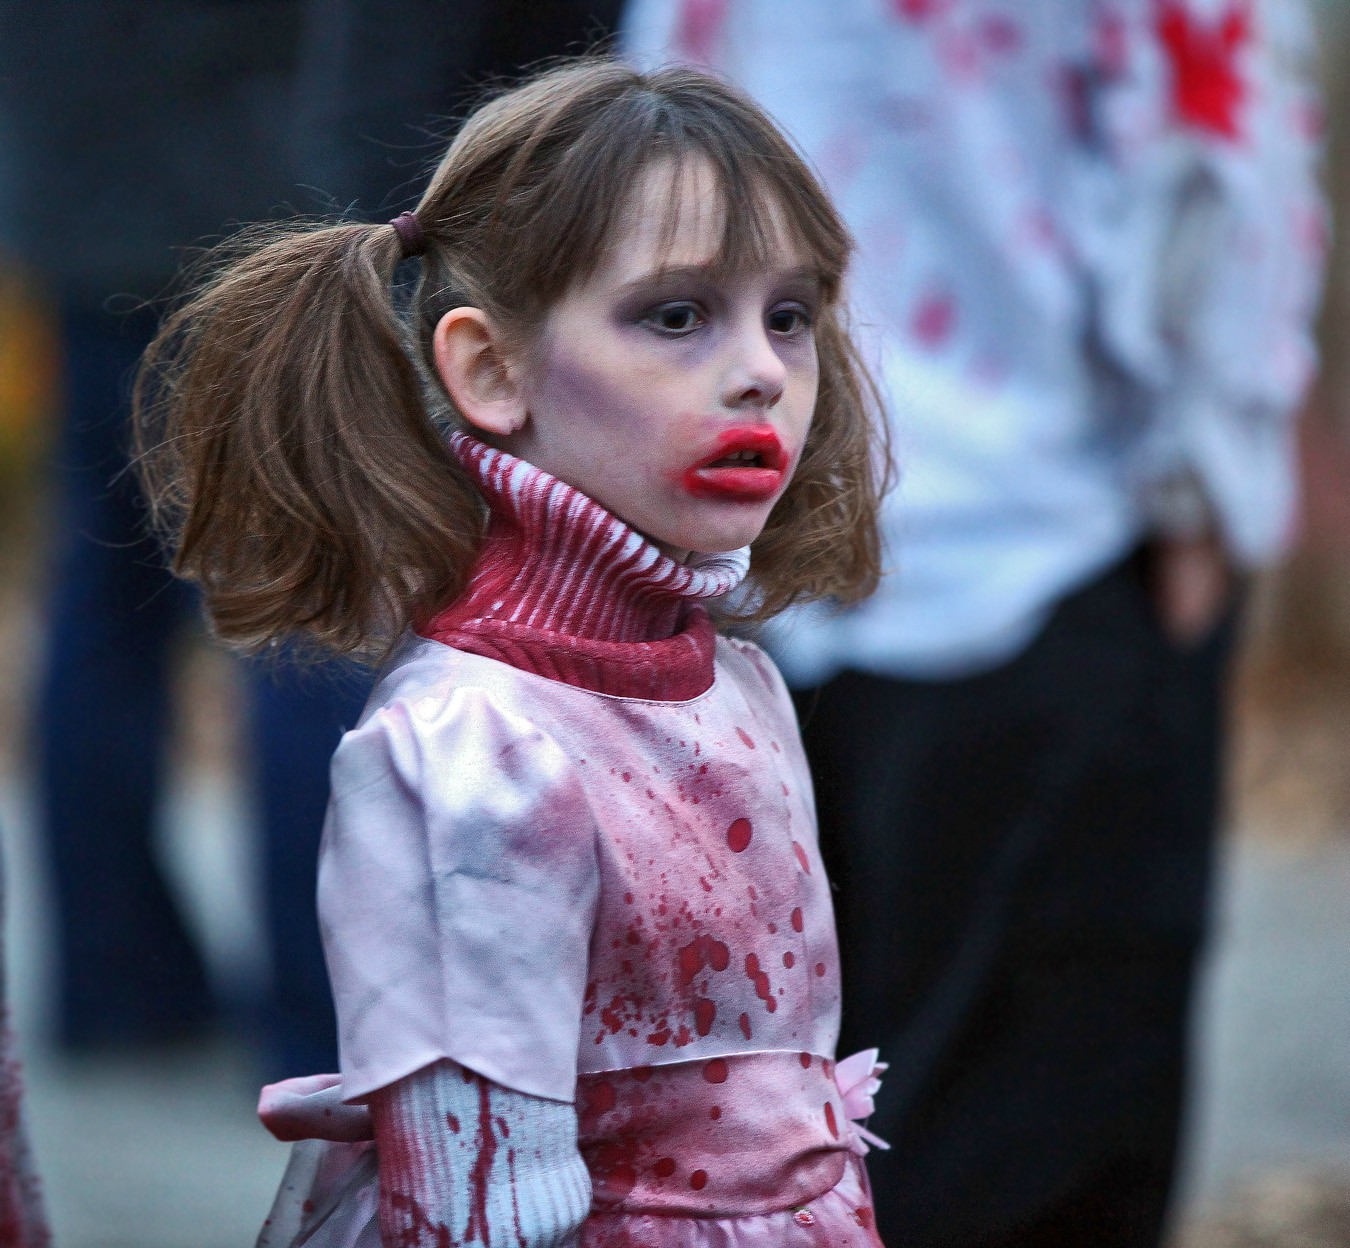 zombie kid img aw author sava gregory and verena